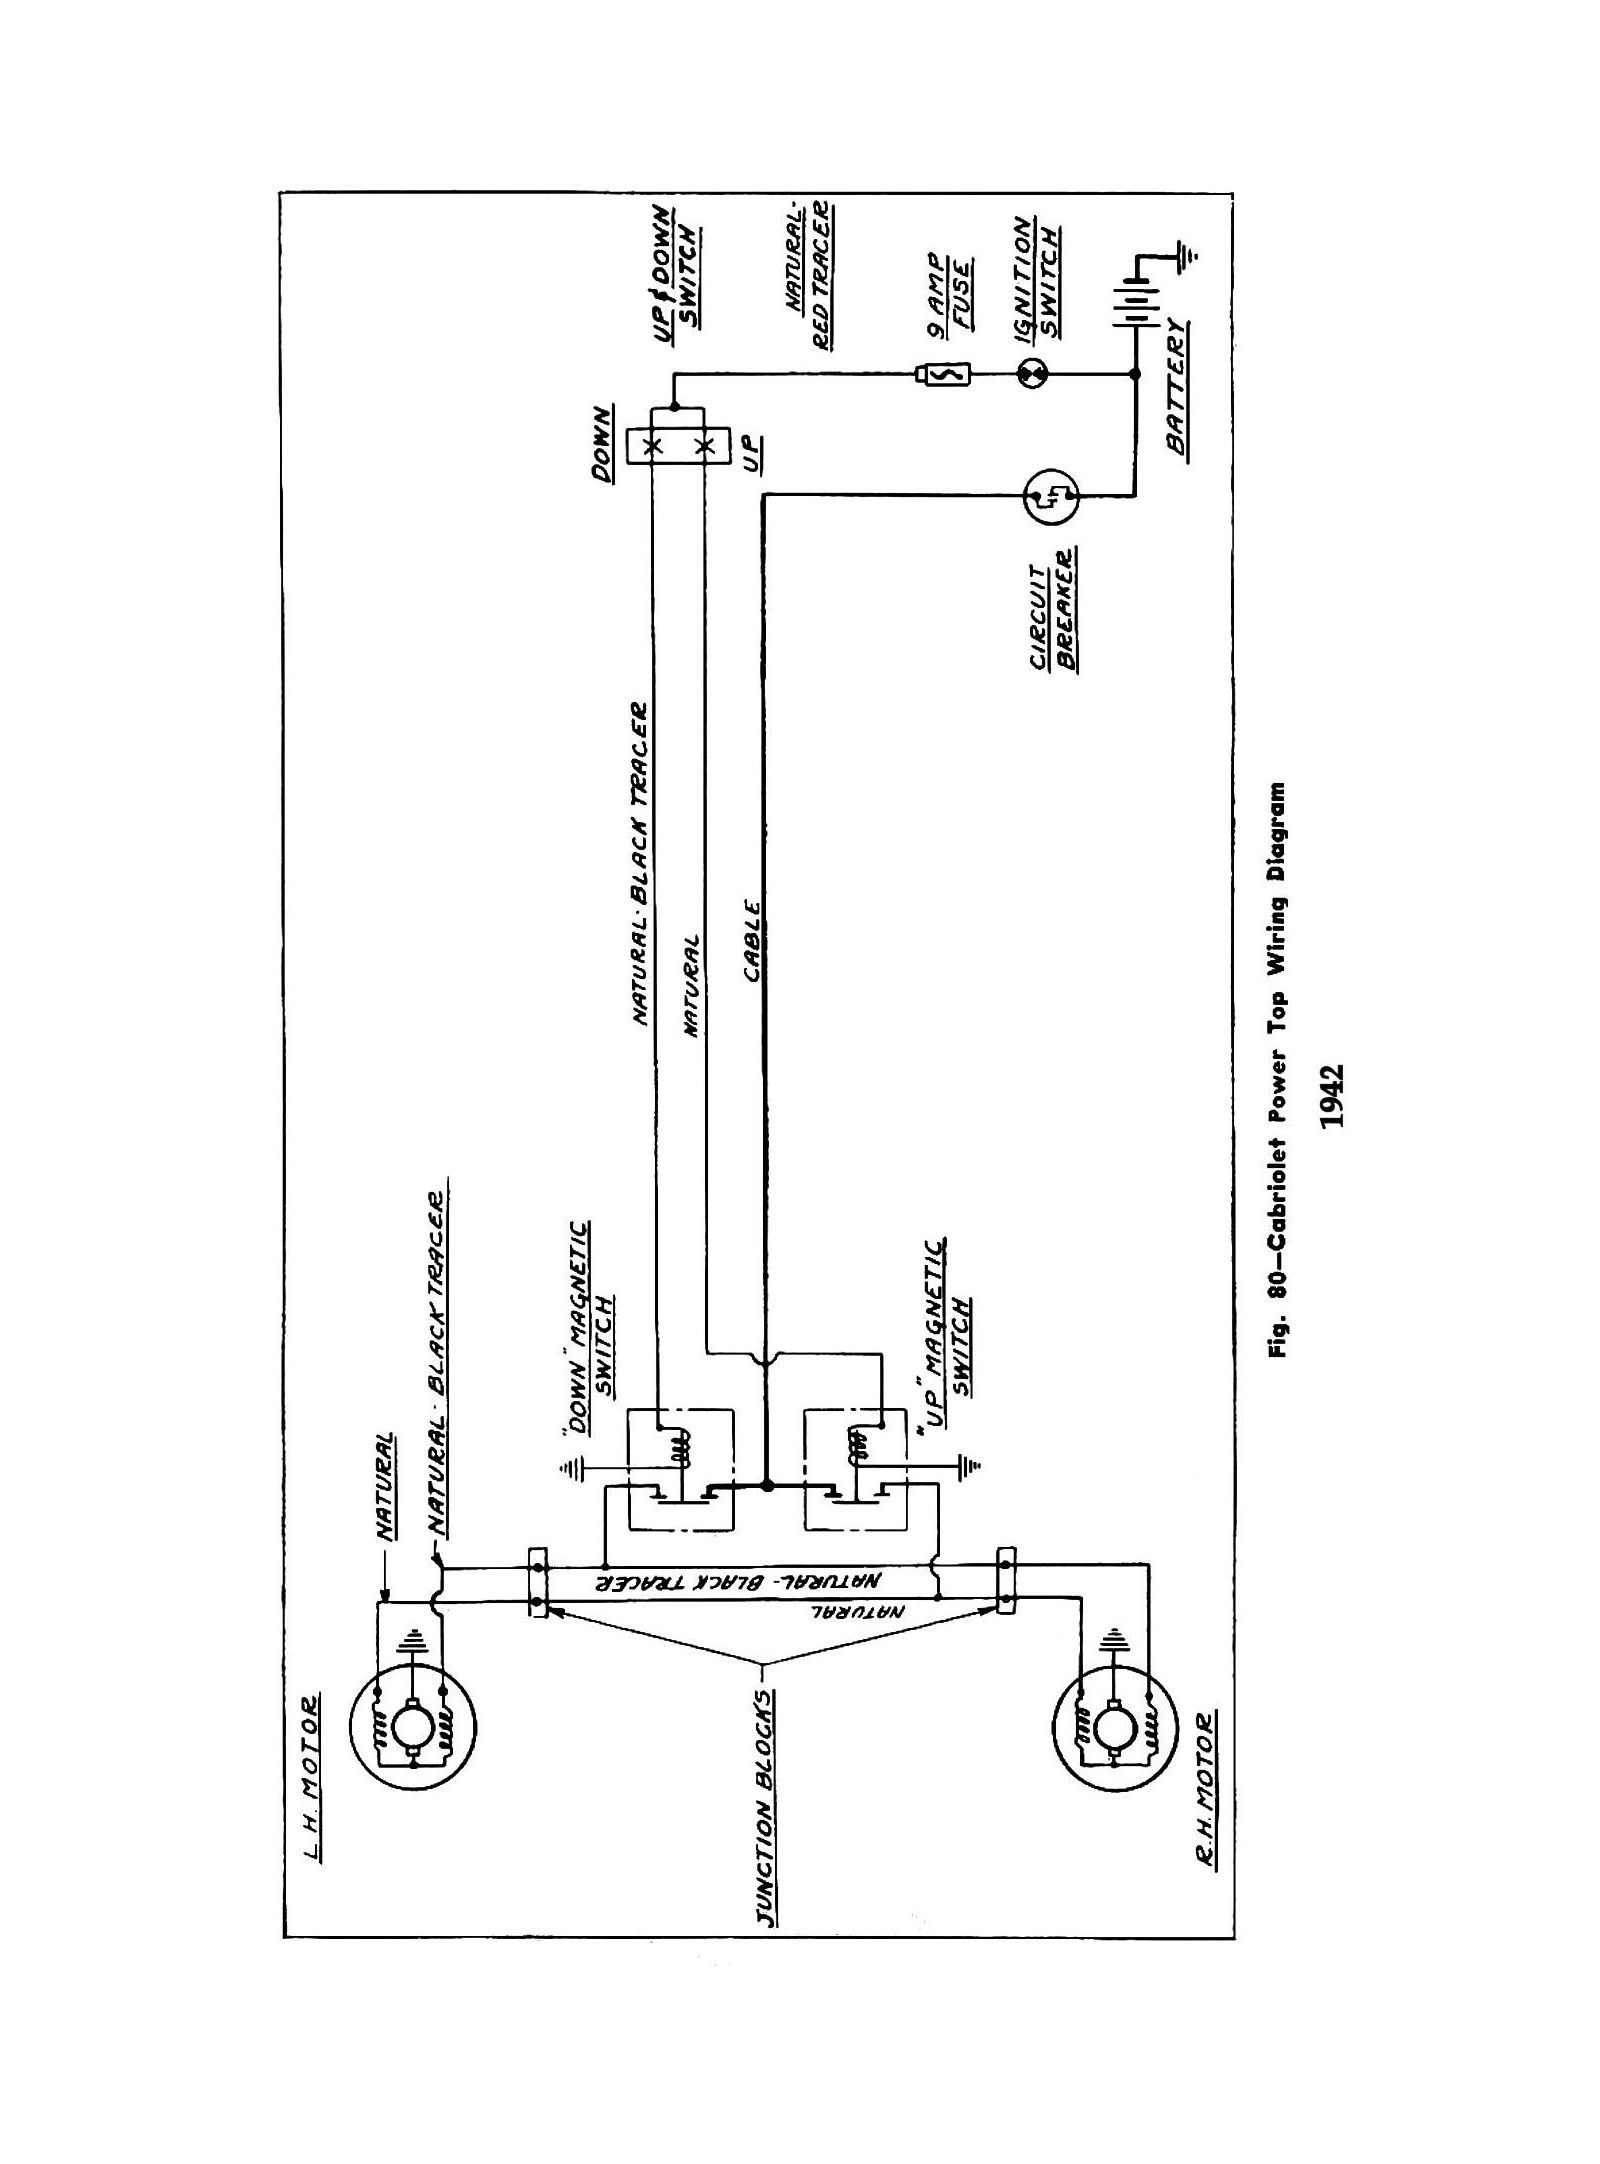 1942 Truck Wiring · 1942 Cabriolet Power Top Wiring